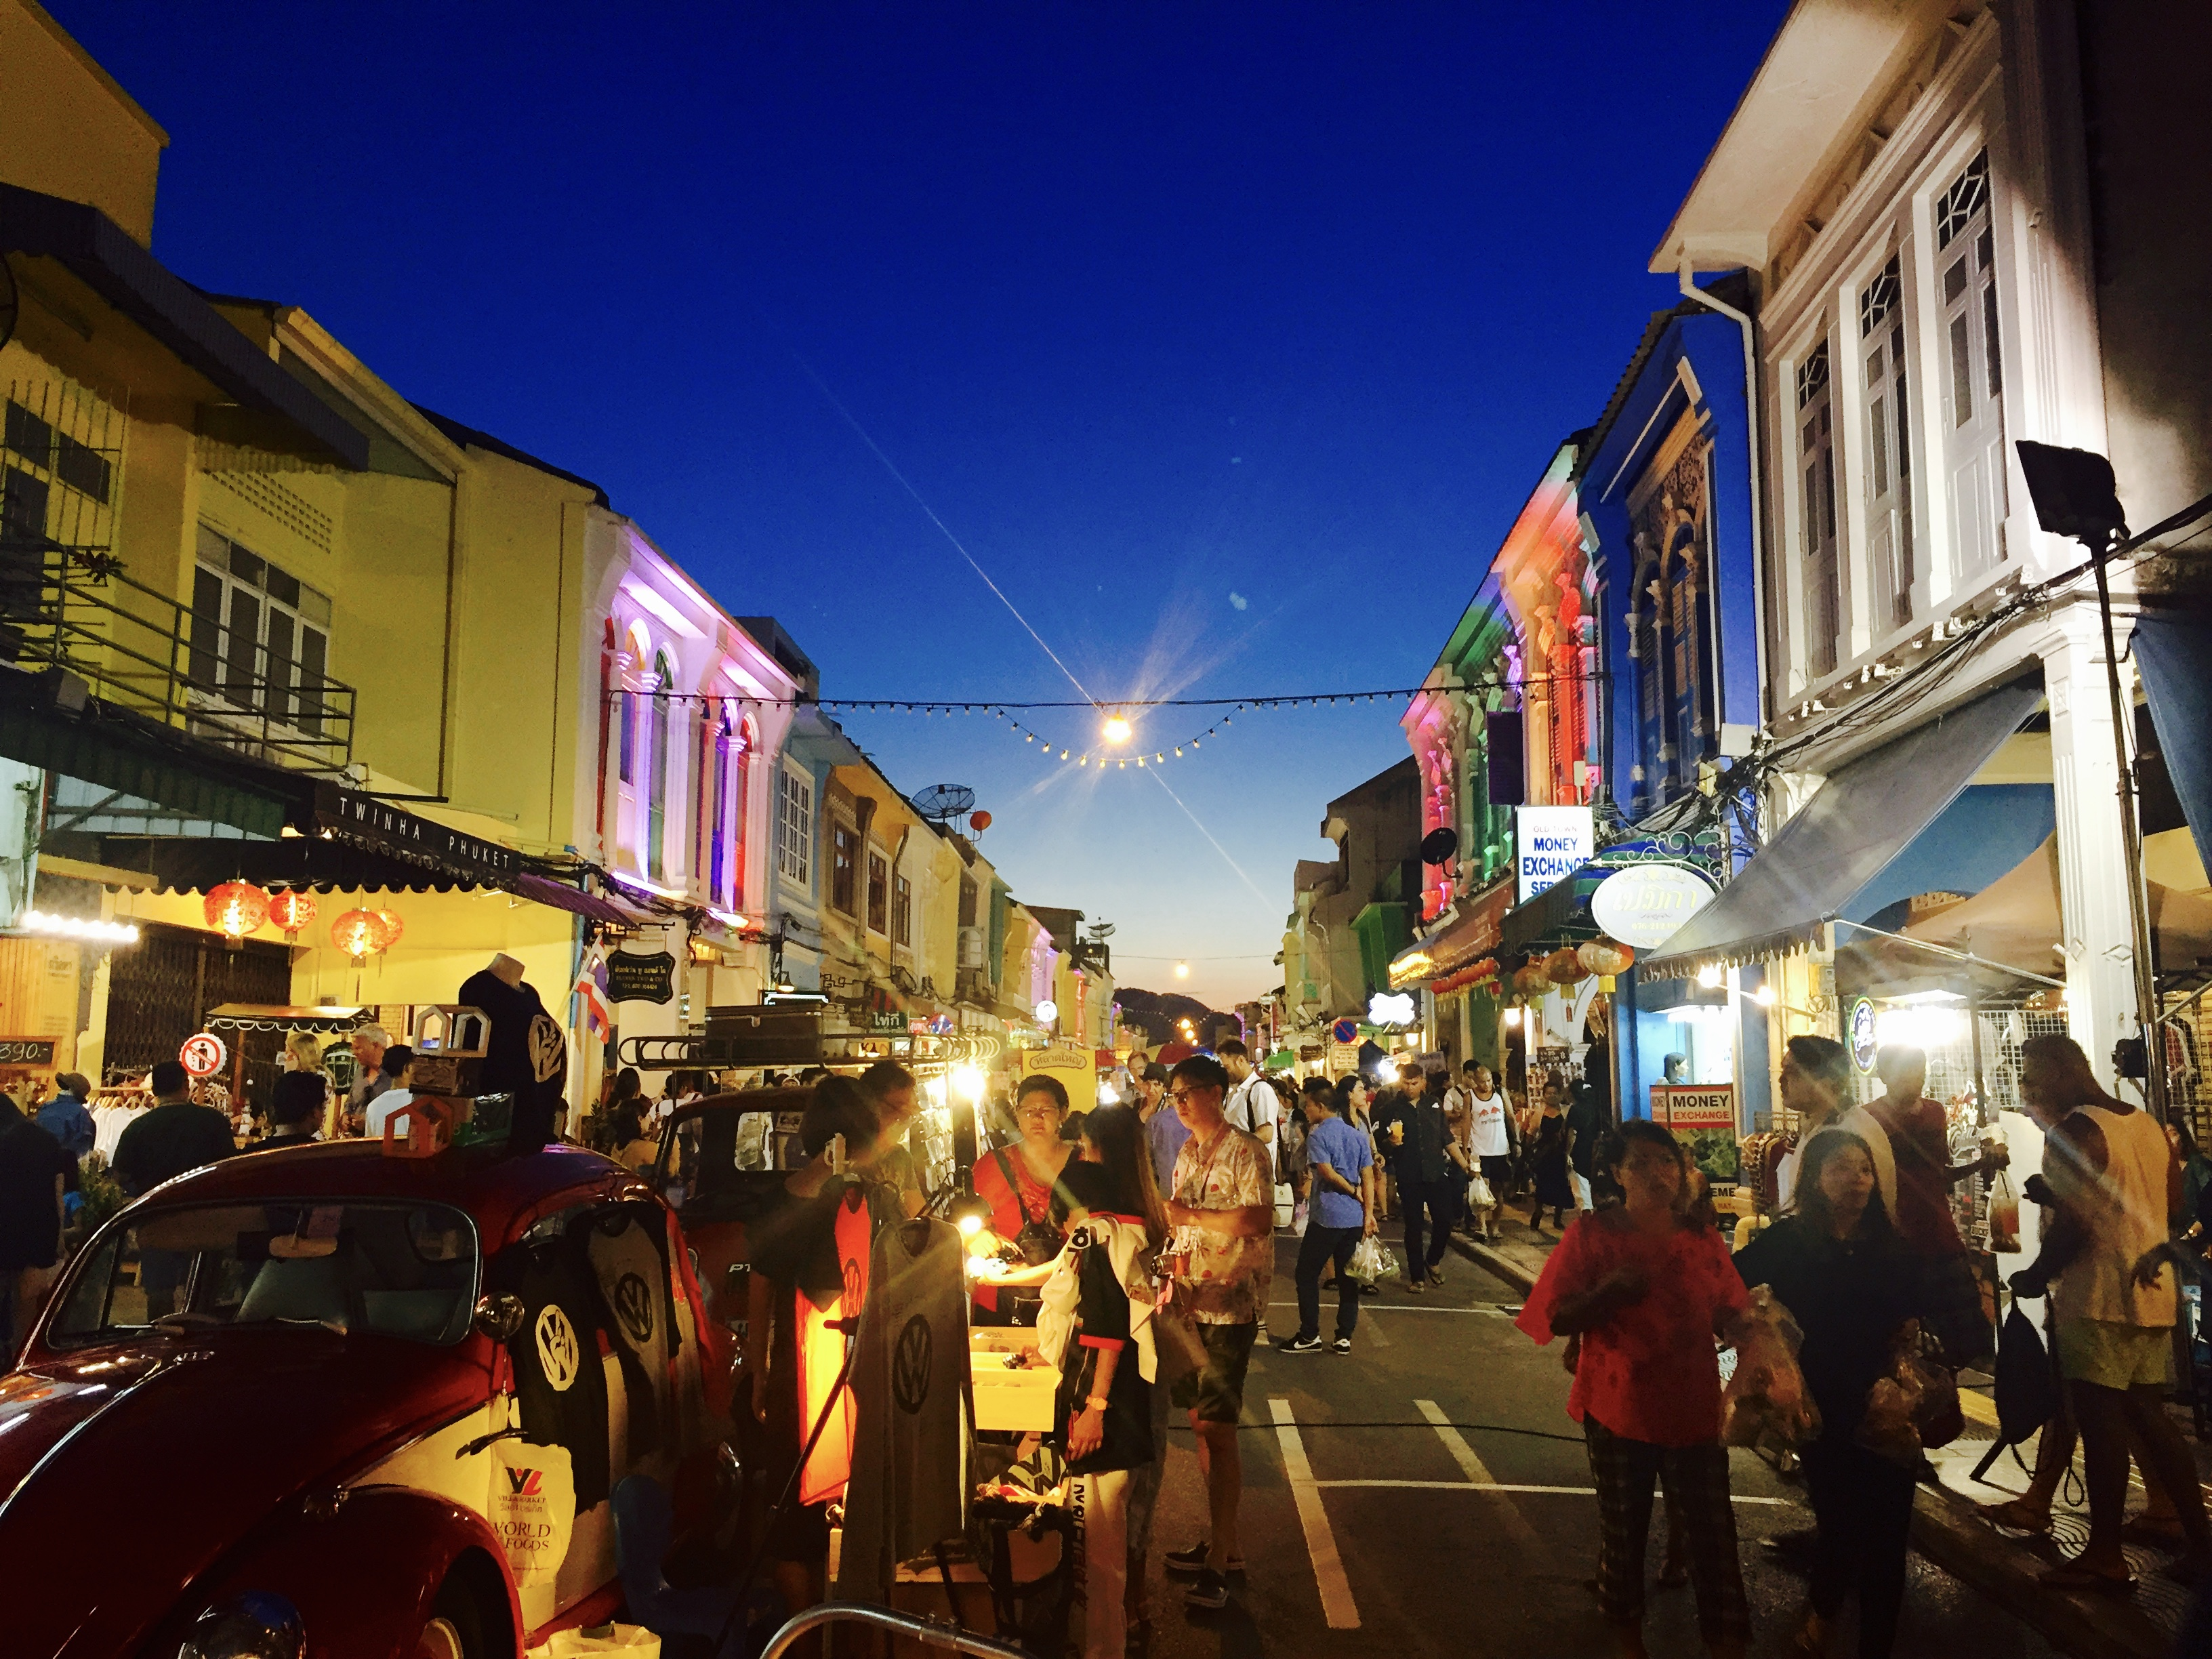 Phuket Old Town, start of your south Thailand itinerary